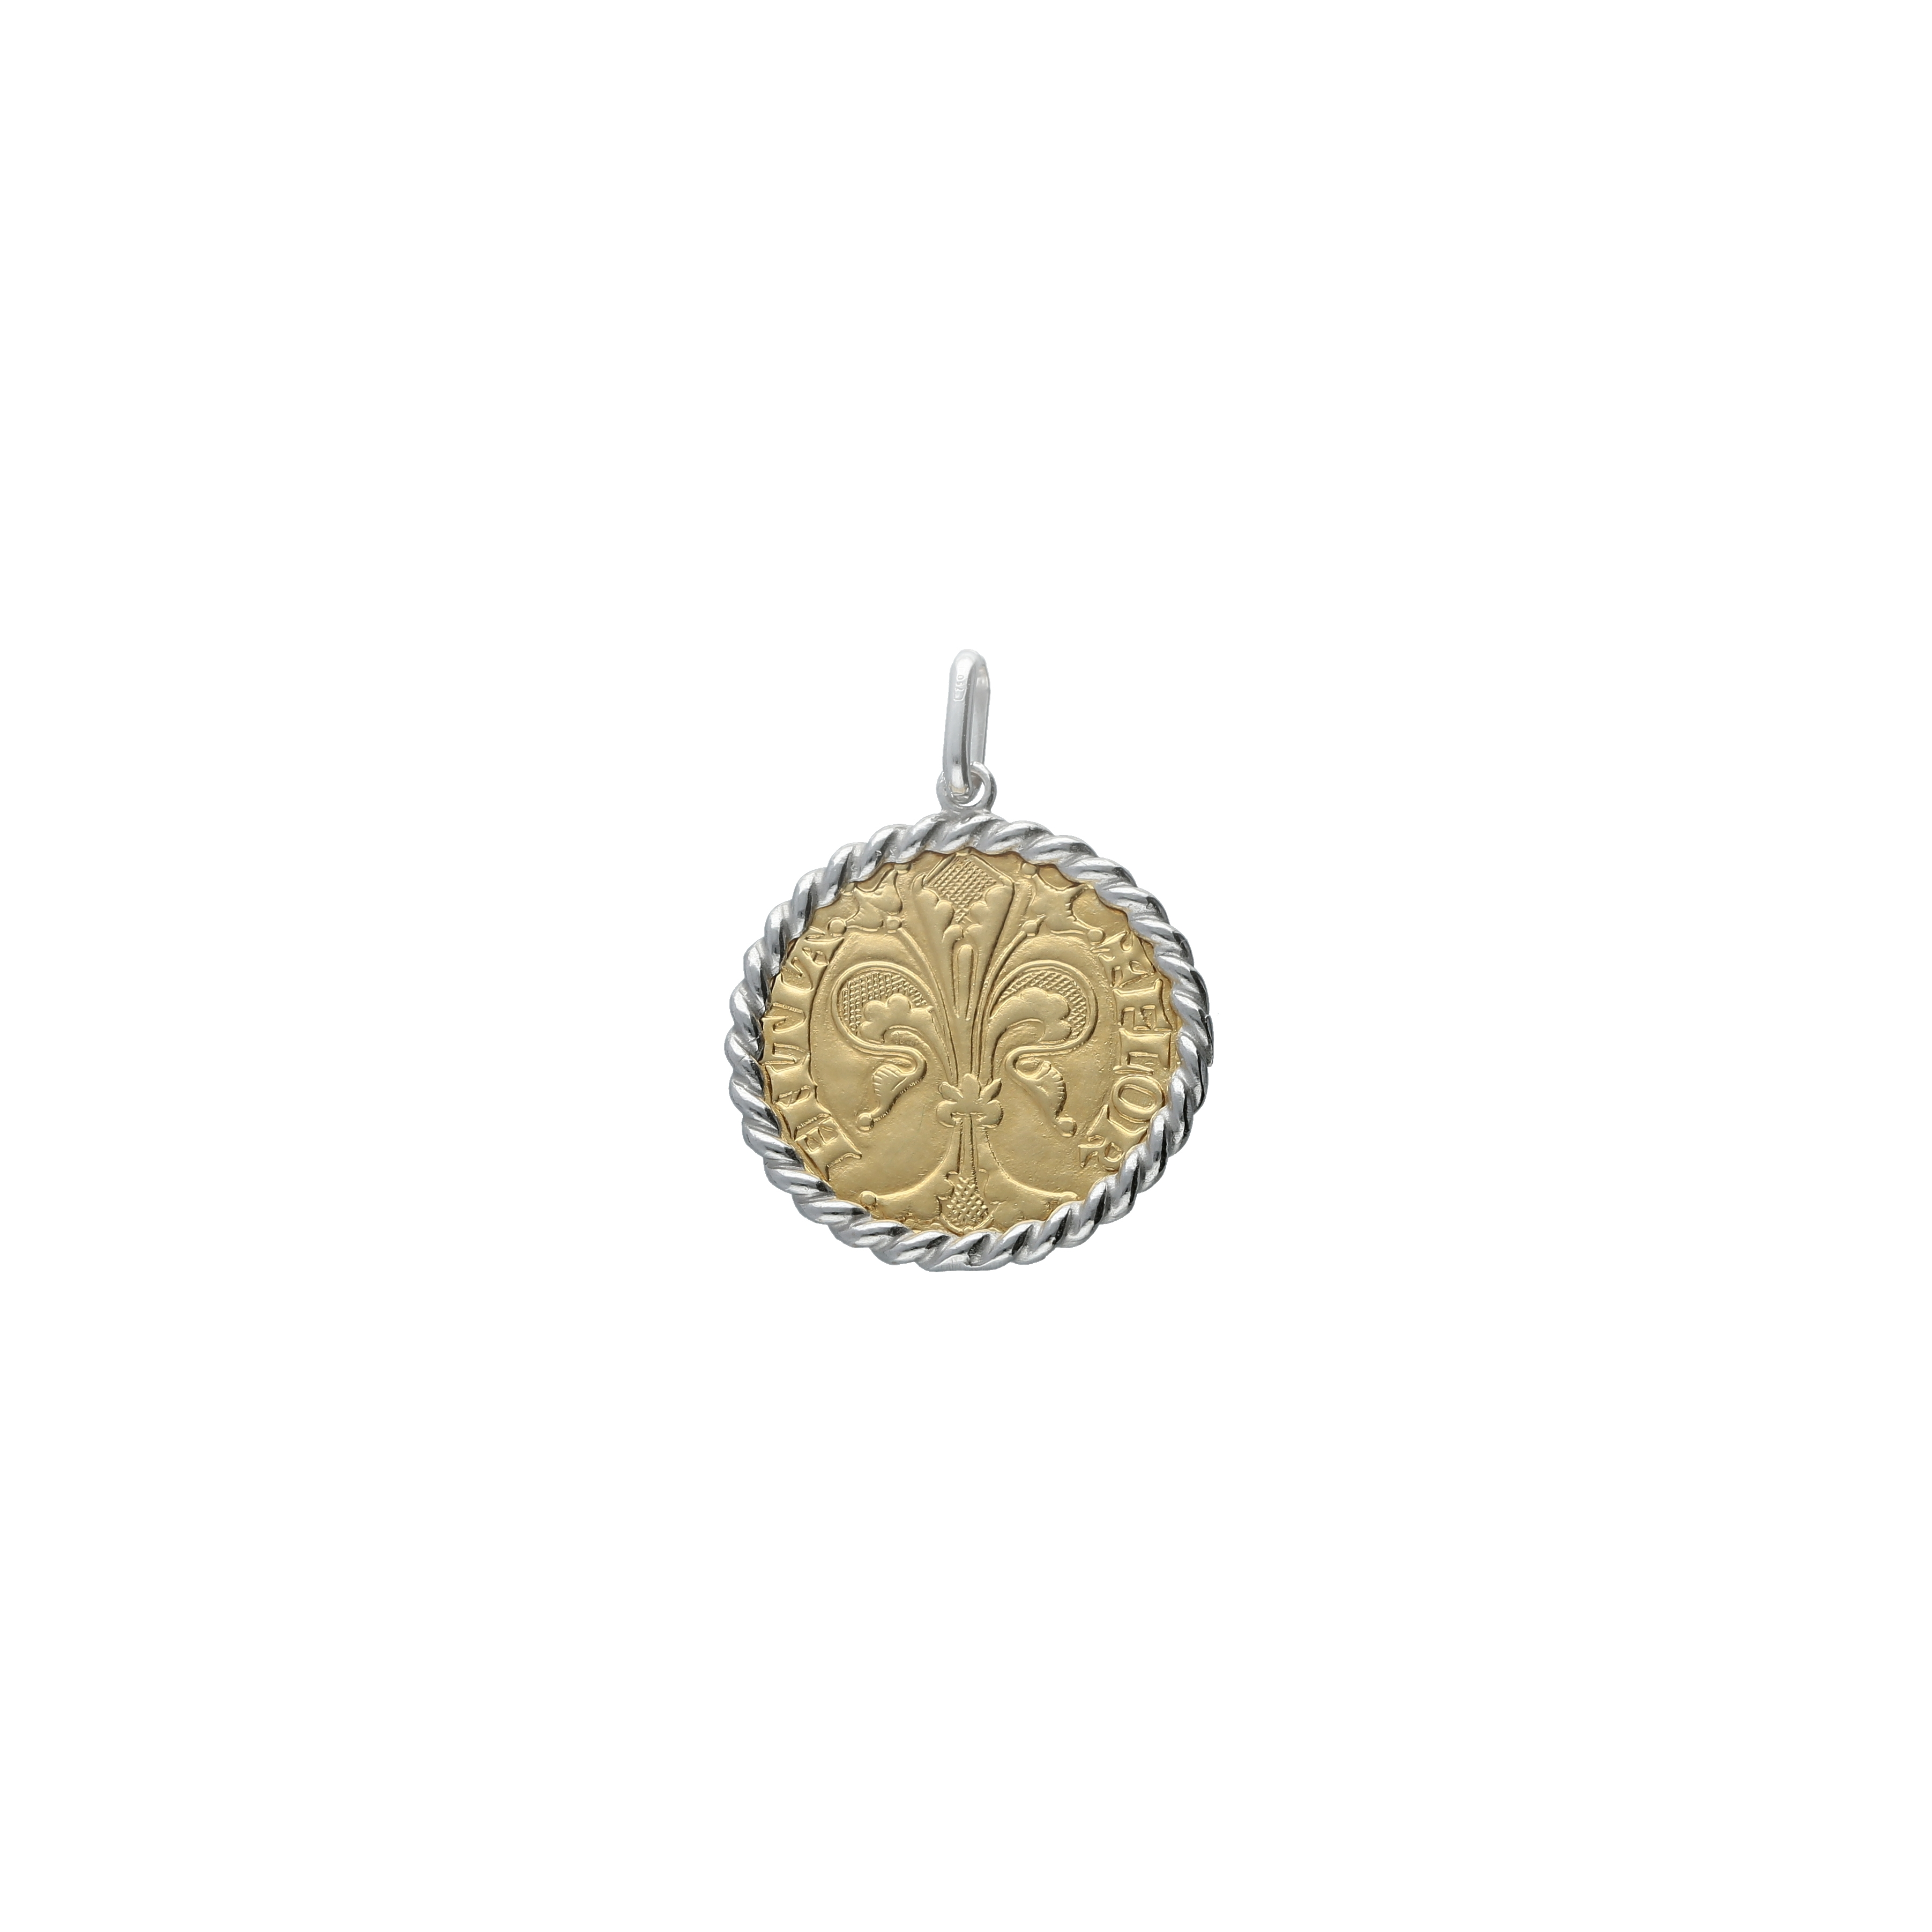 Pendant Charm Florentine coin fiorino in 18kt two tone gold